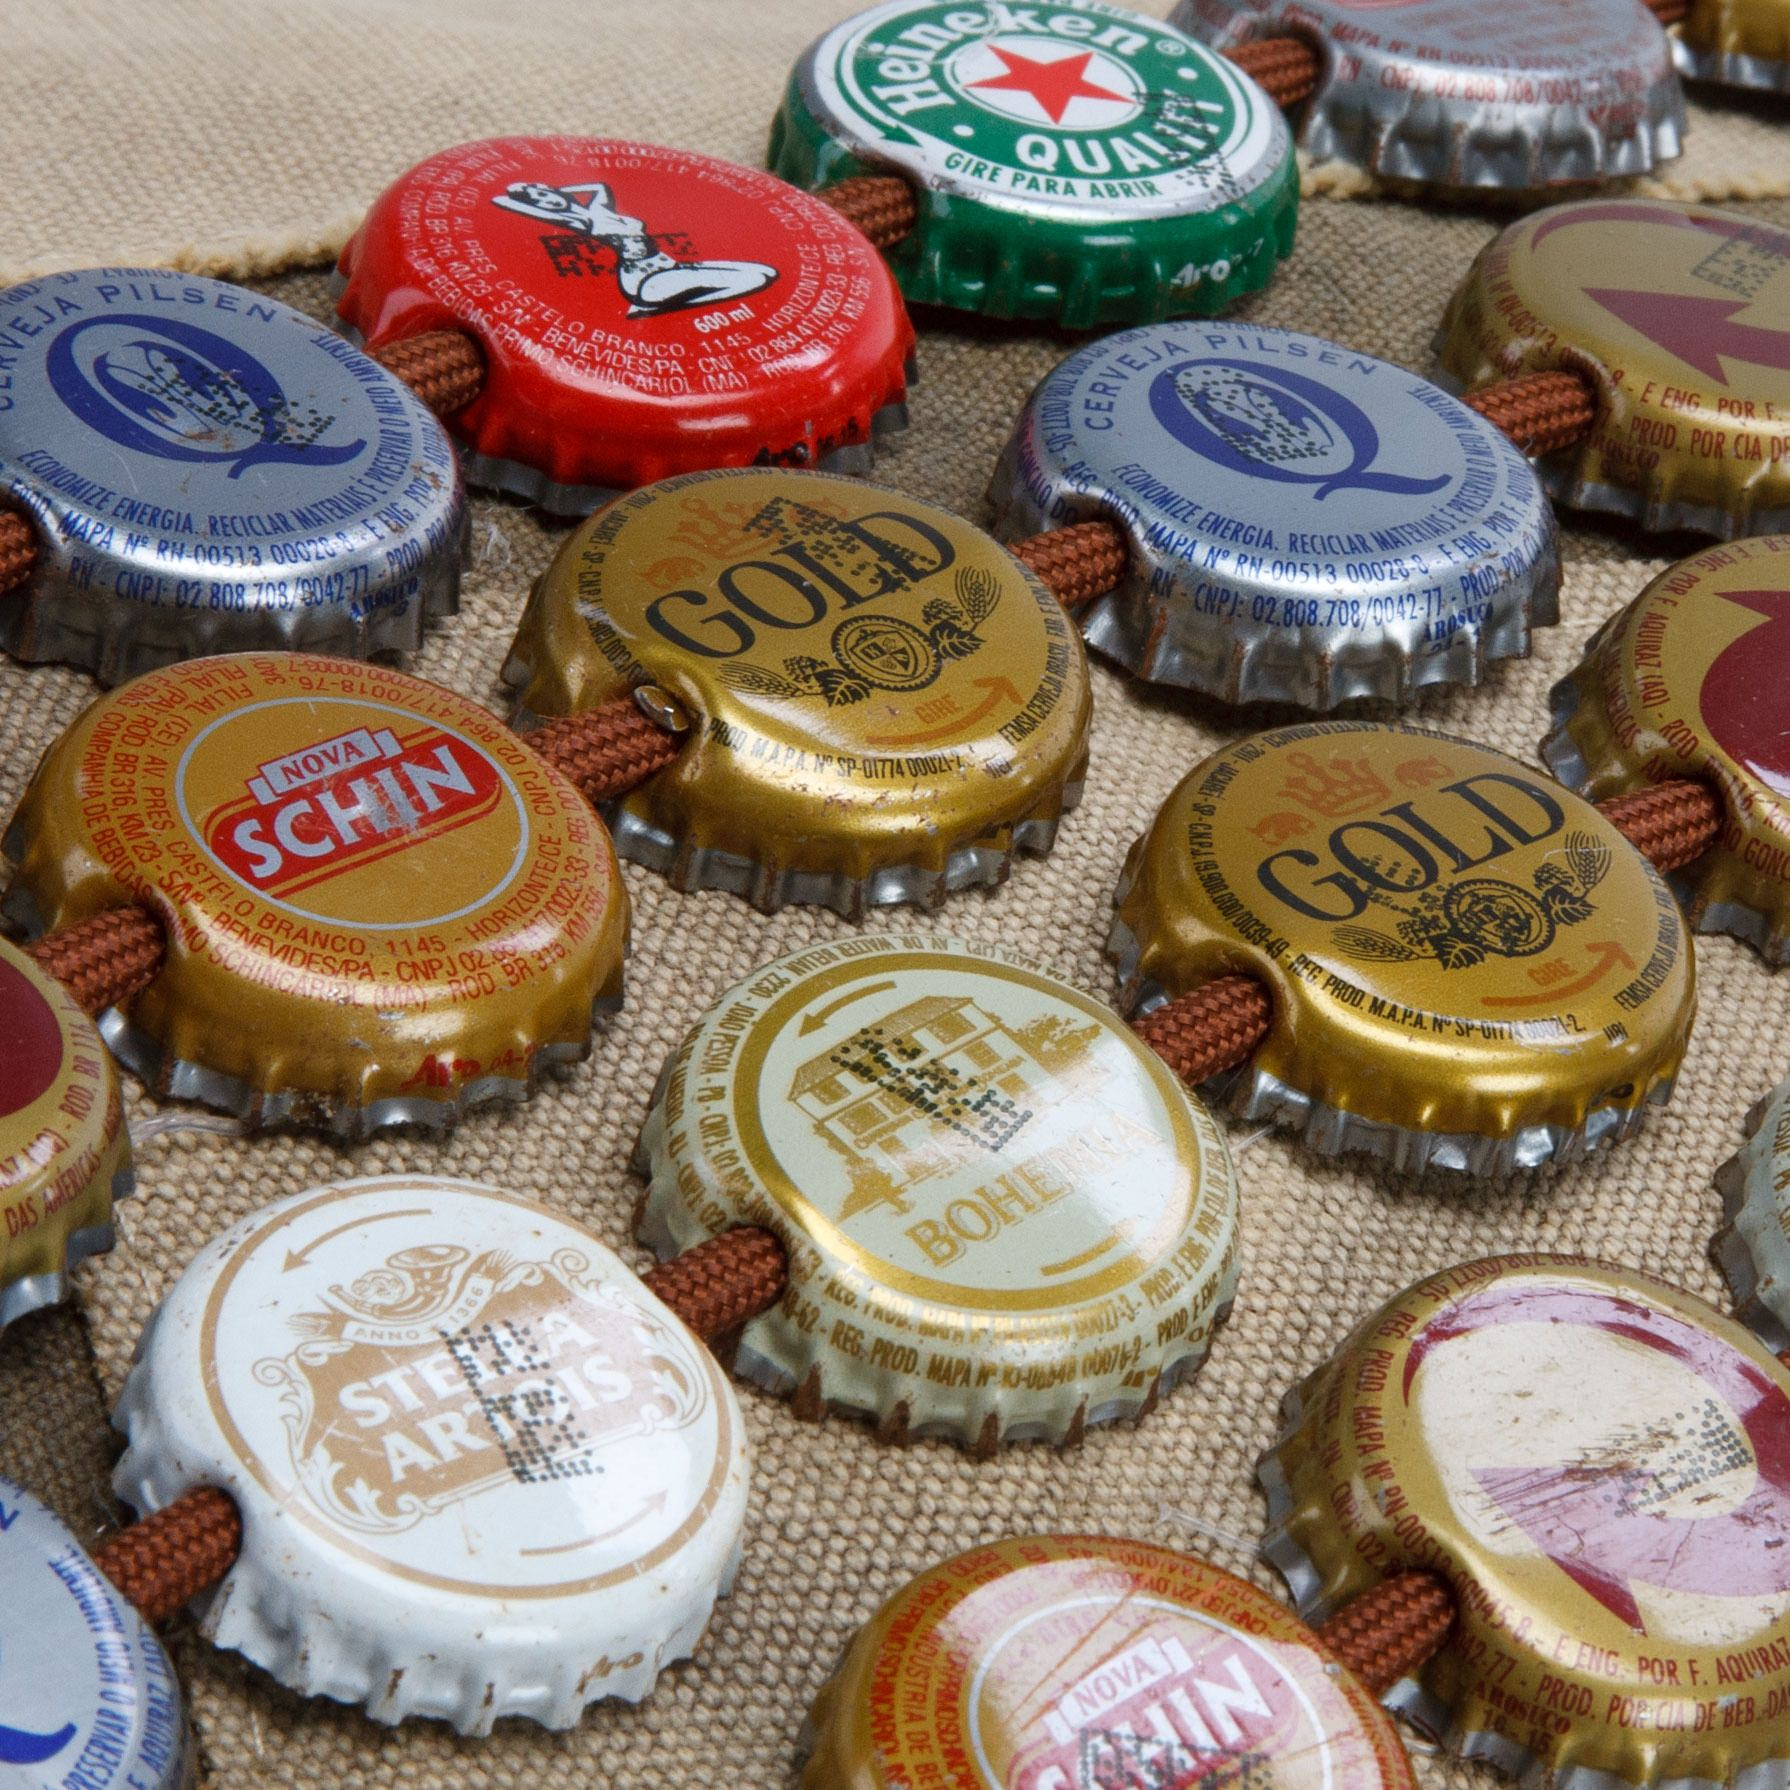 Beer Cap Hat Band - Brazilian Beer by The Real Deal: Made In Brazil